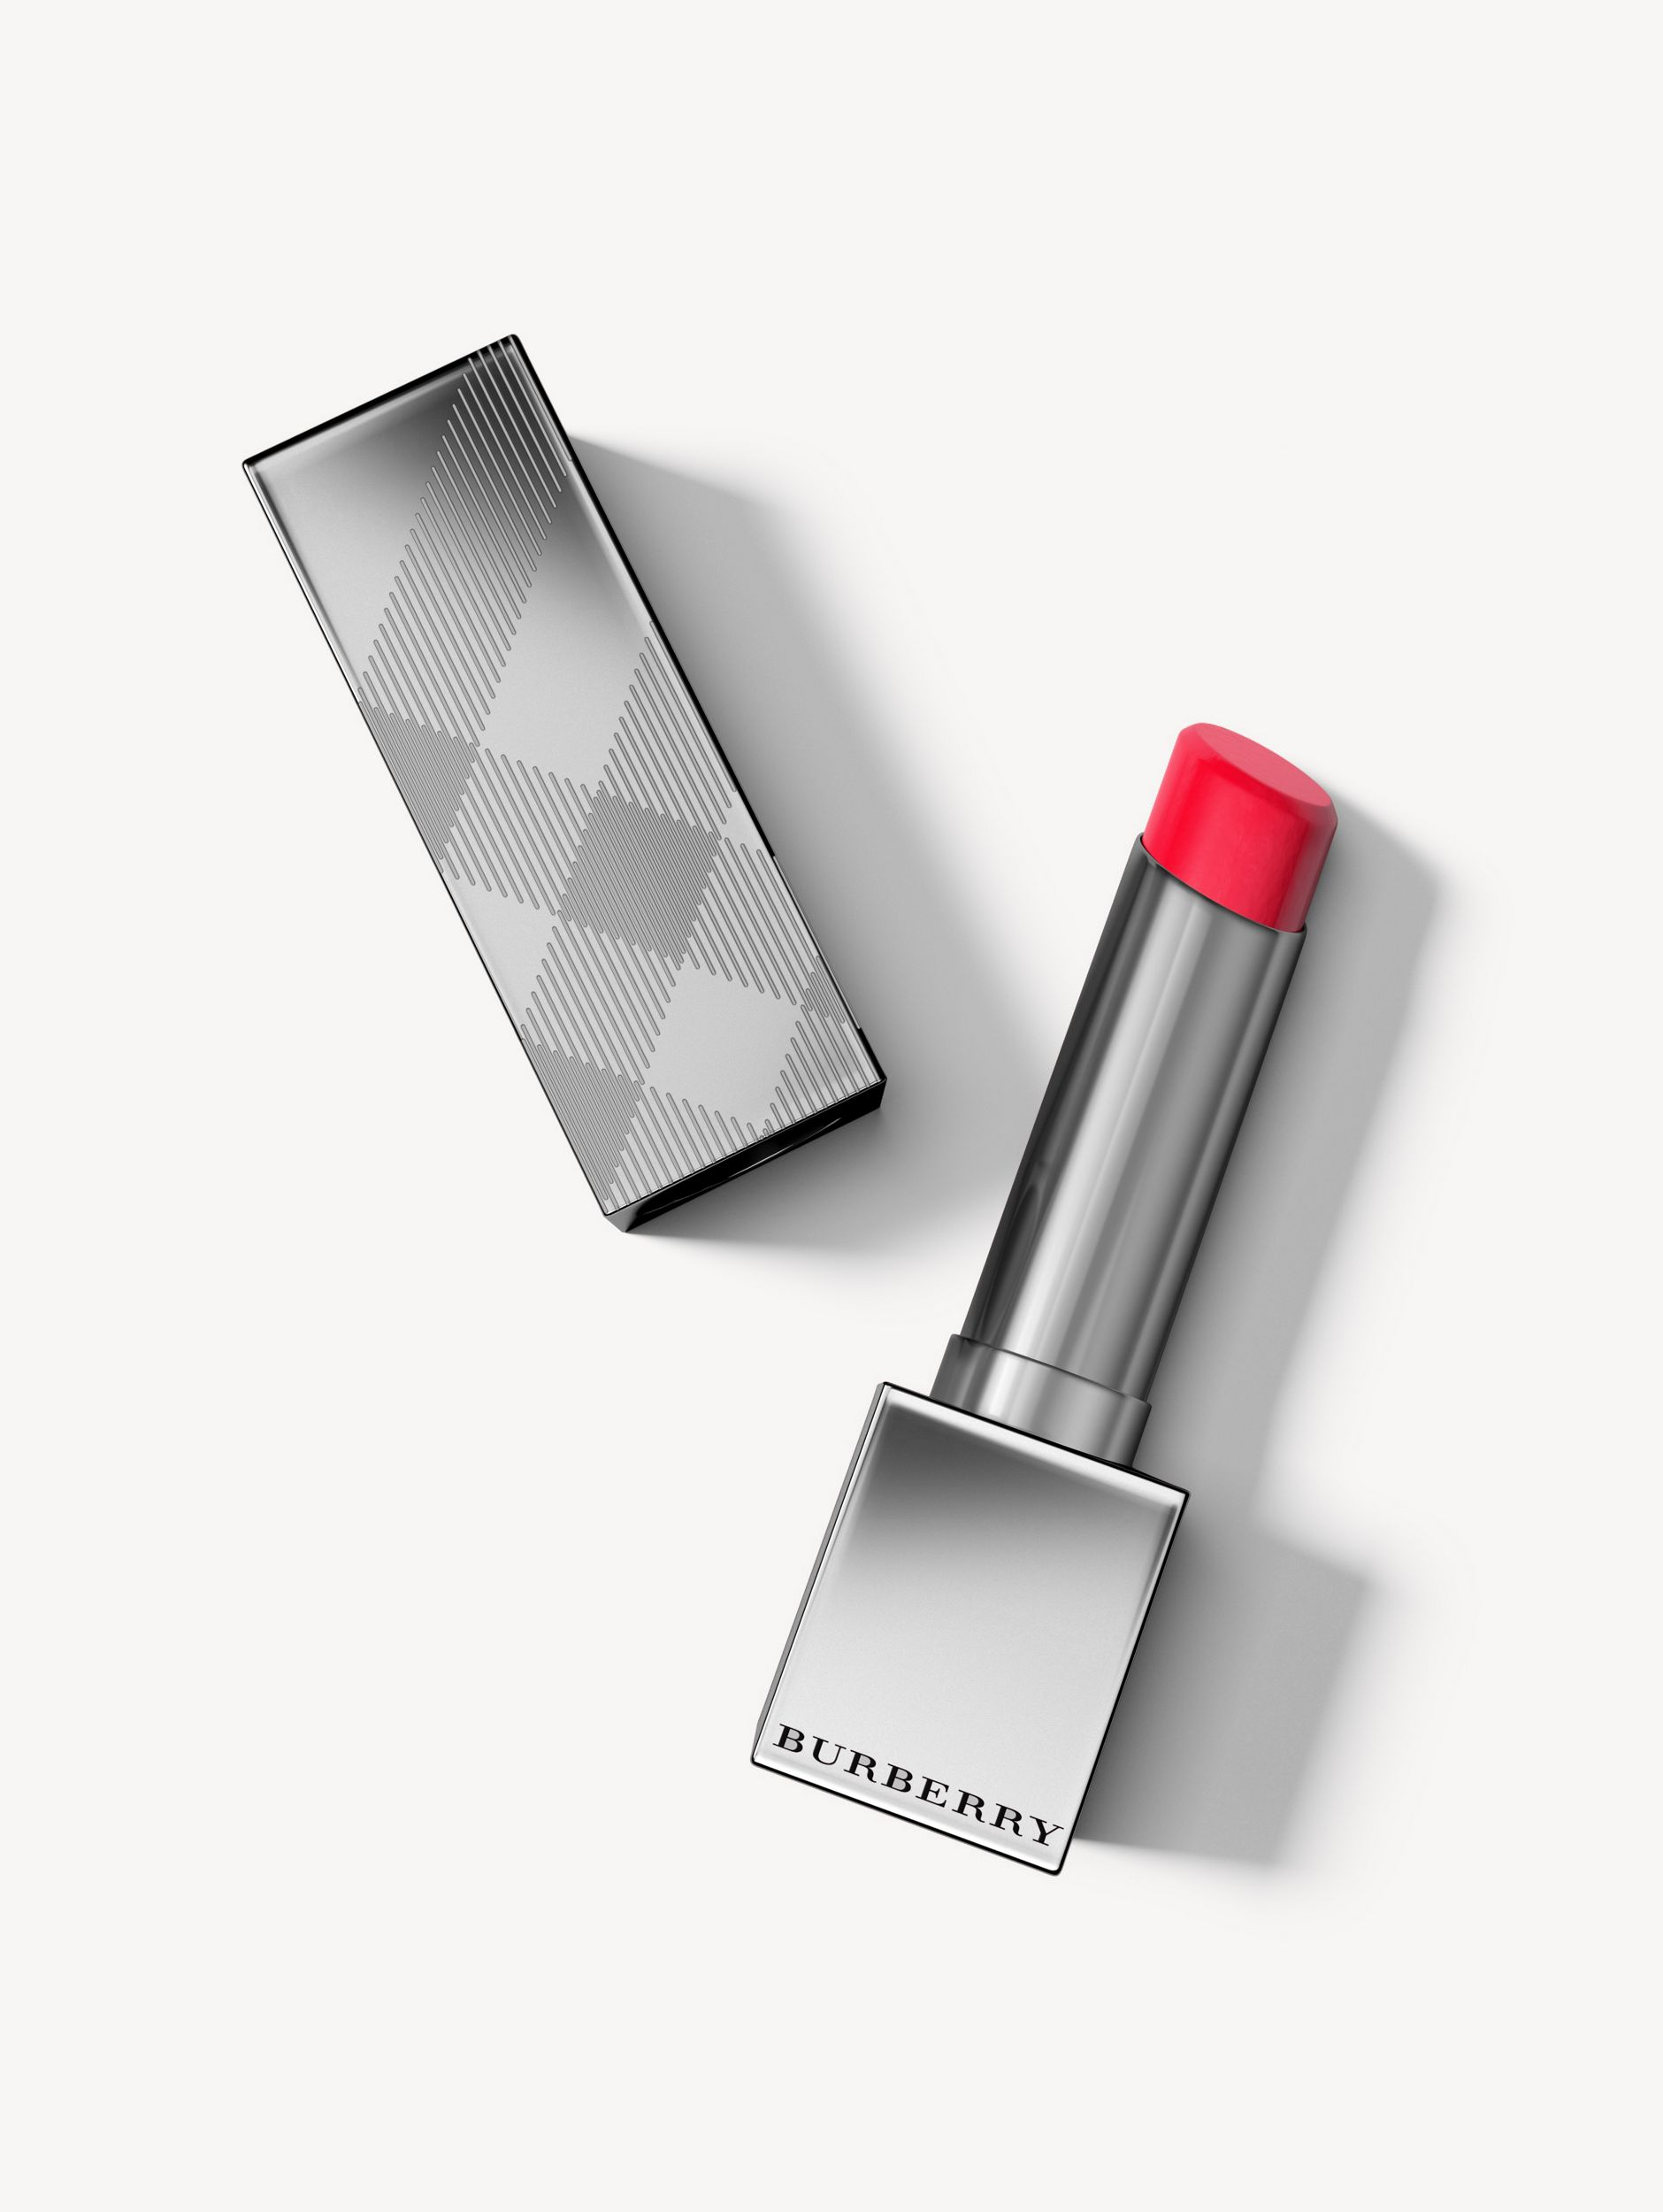 Burberry Kisses Sheer – Cherry Red No.301 - Femme | Burberry Canada - 1